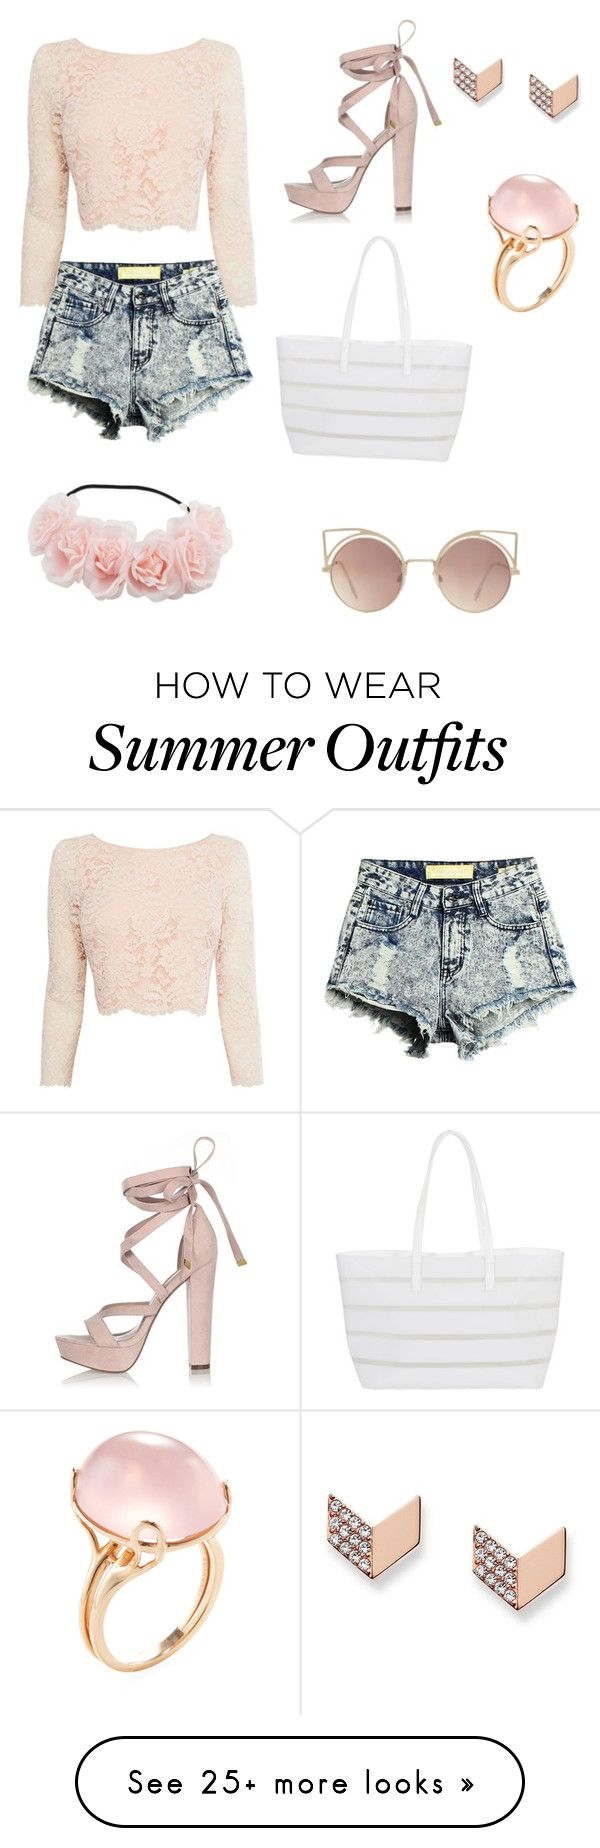 """""""Cute Summer Outfit"""" by kaylafayesmith on Polyvore featuring Coast, River Island, BUCO, MANGO, FOSSIL and Goshwara"""